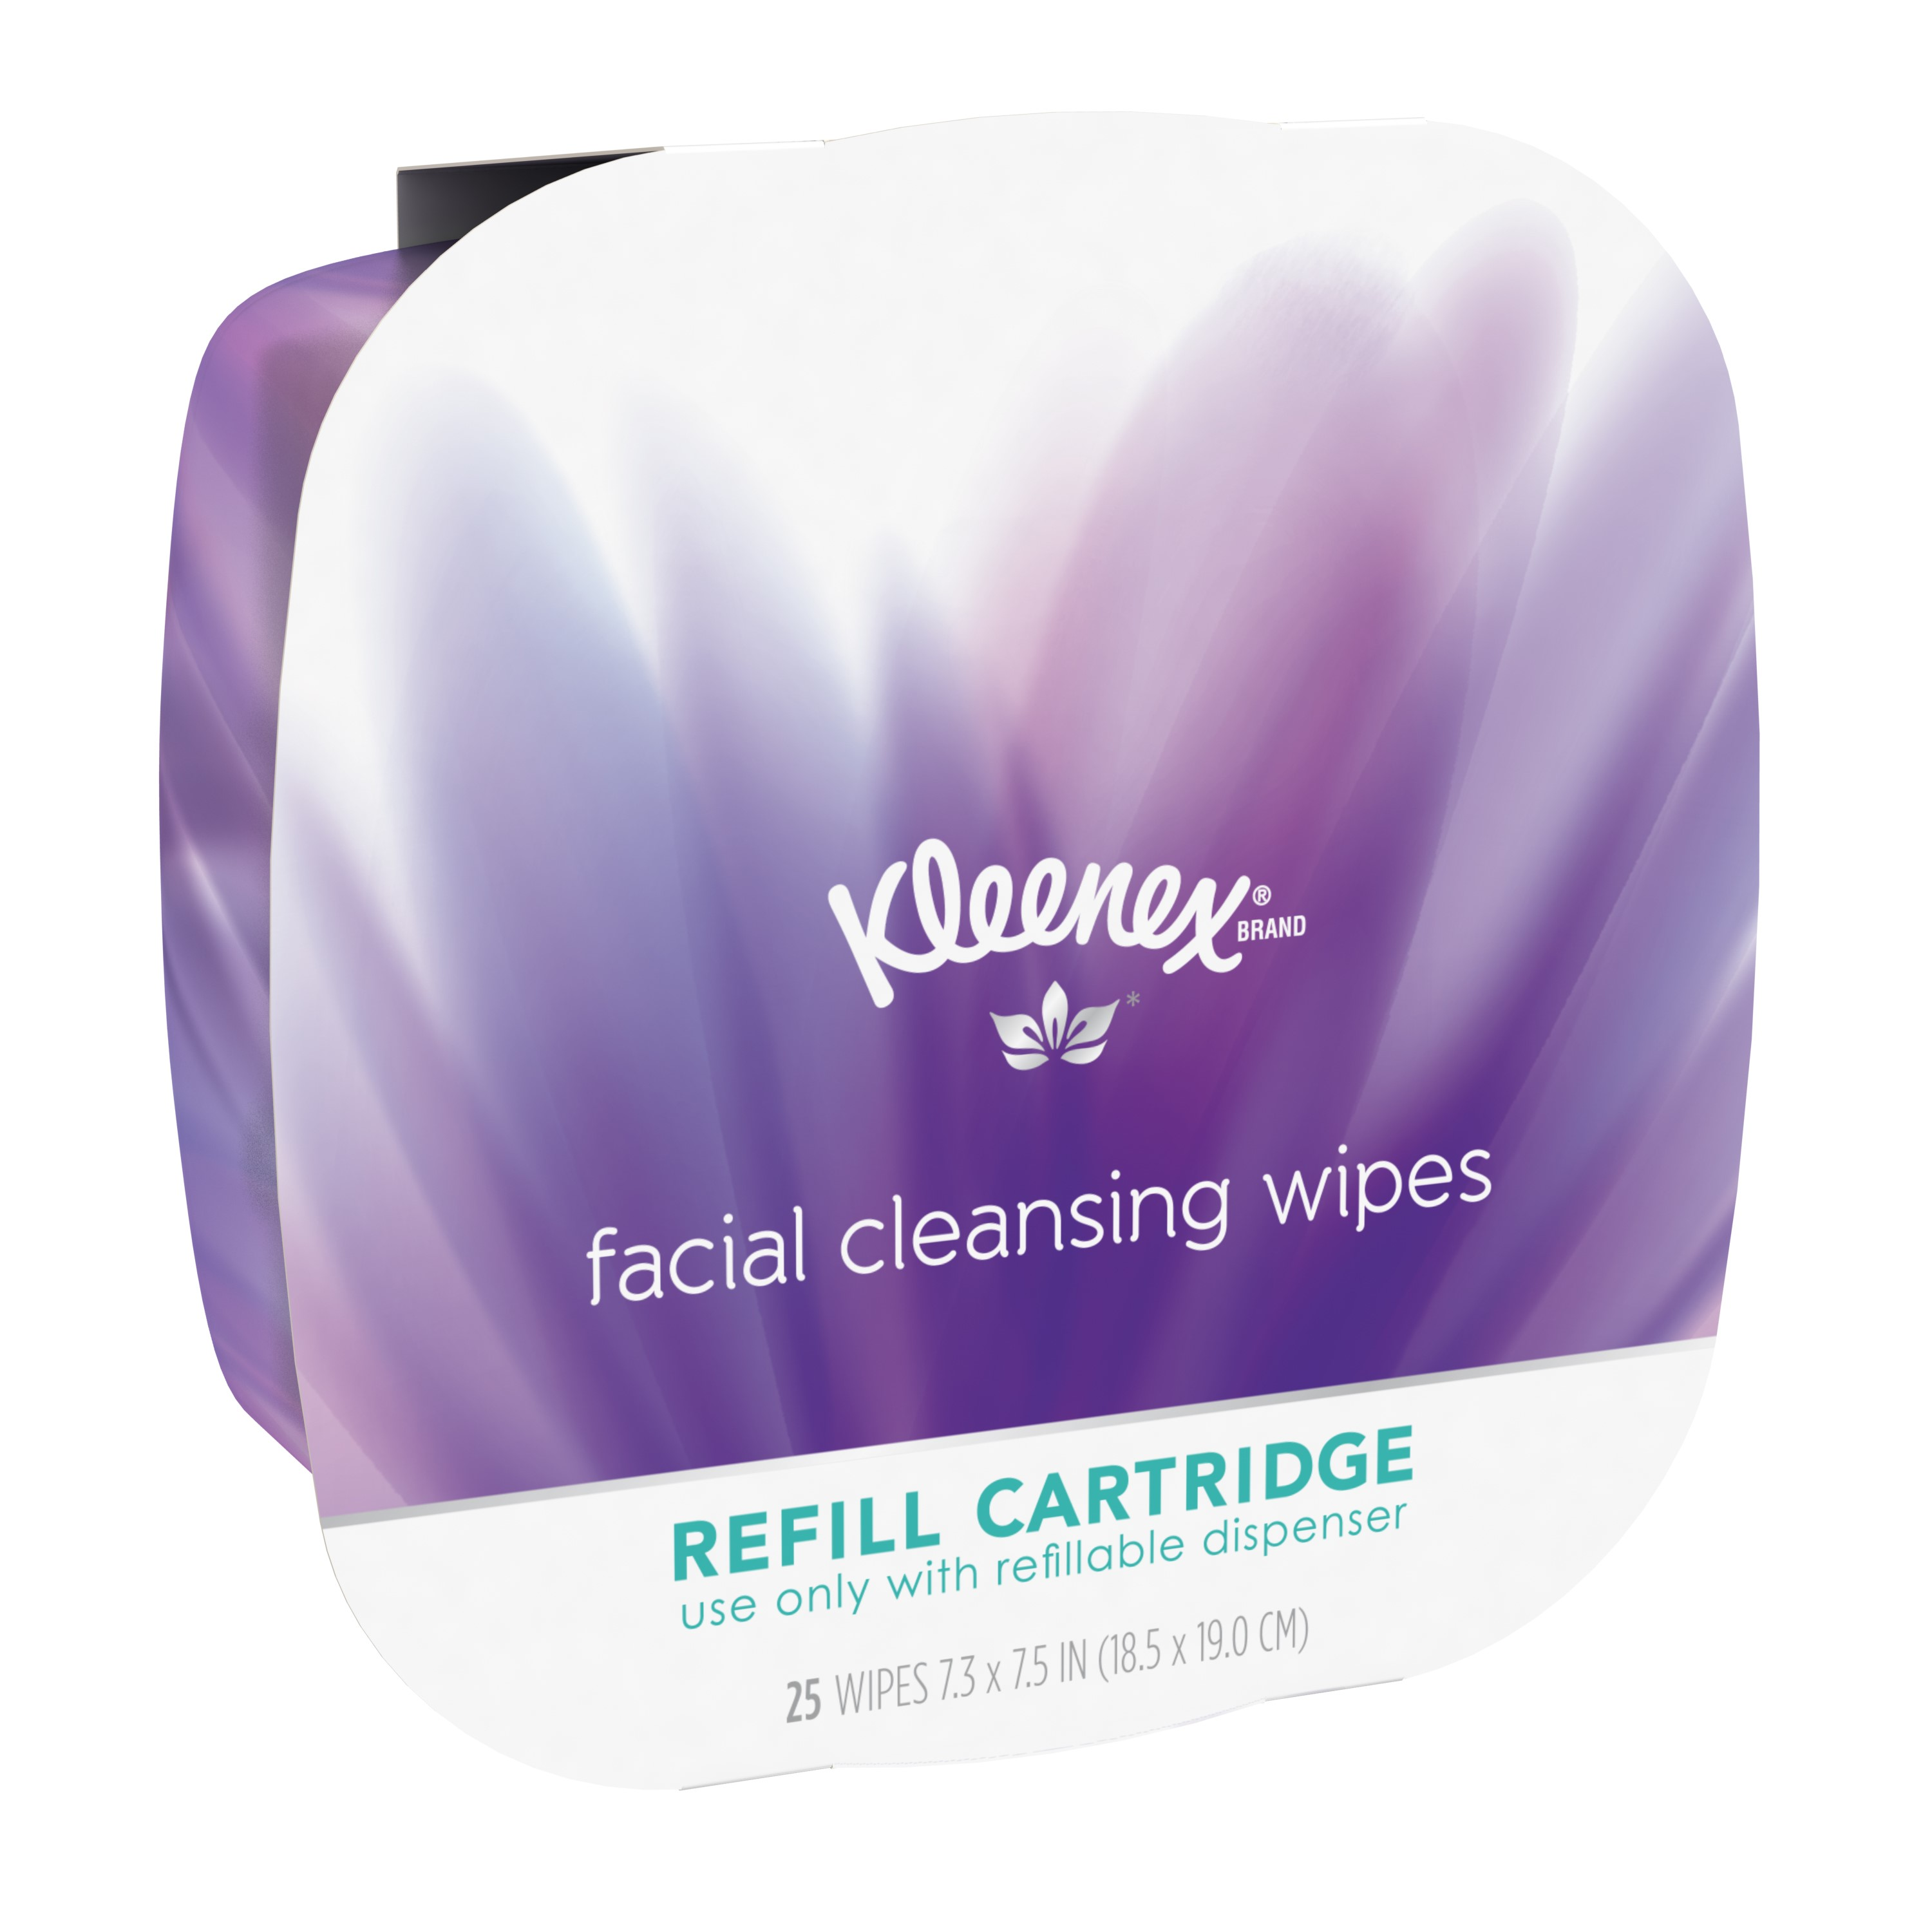 Kleenex Facial Cleansing Wipes Refill Cartridge, 25 Count